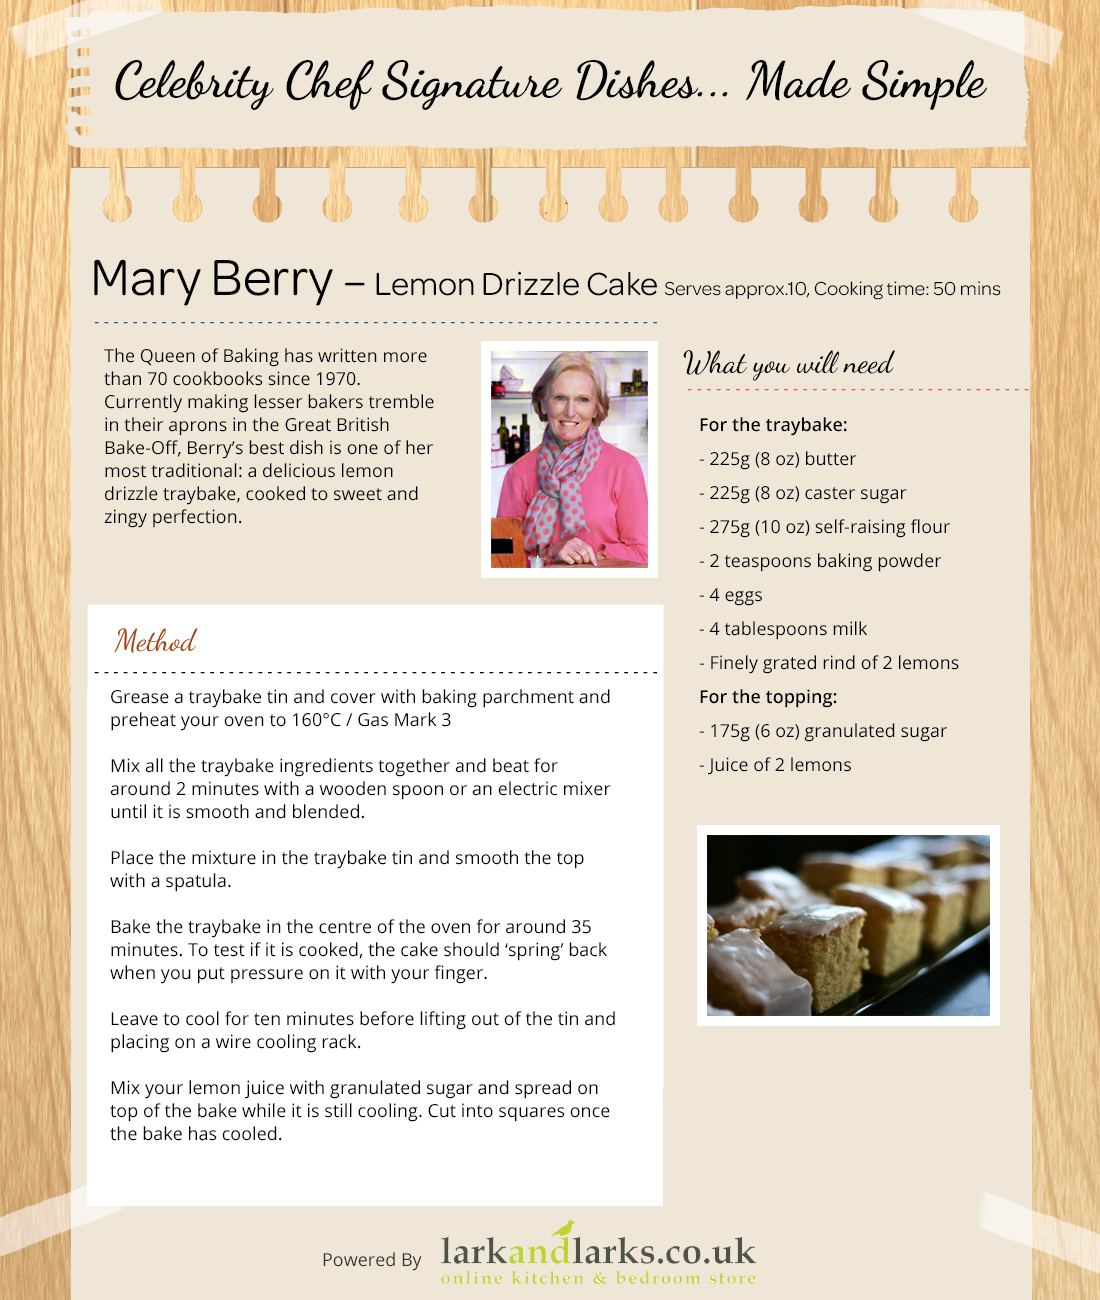 Lemon Drizzle Cake Recipe from Mary Berry and Lark and Larks UK!